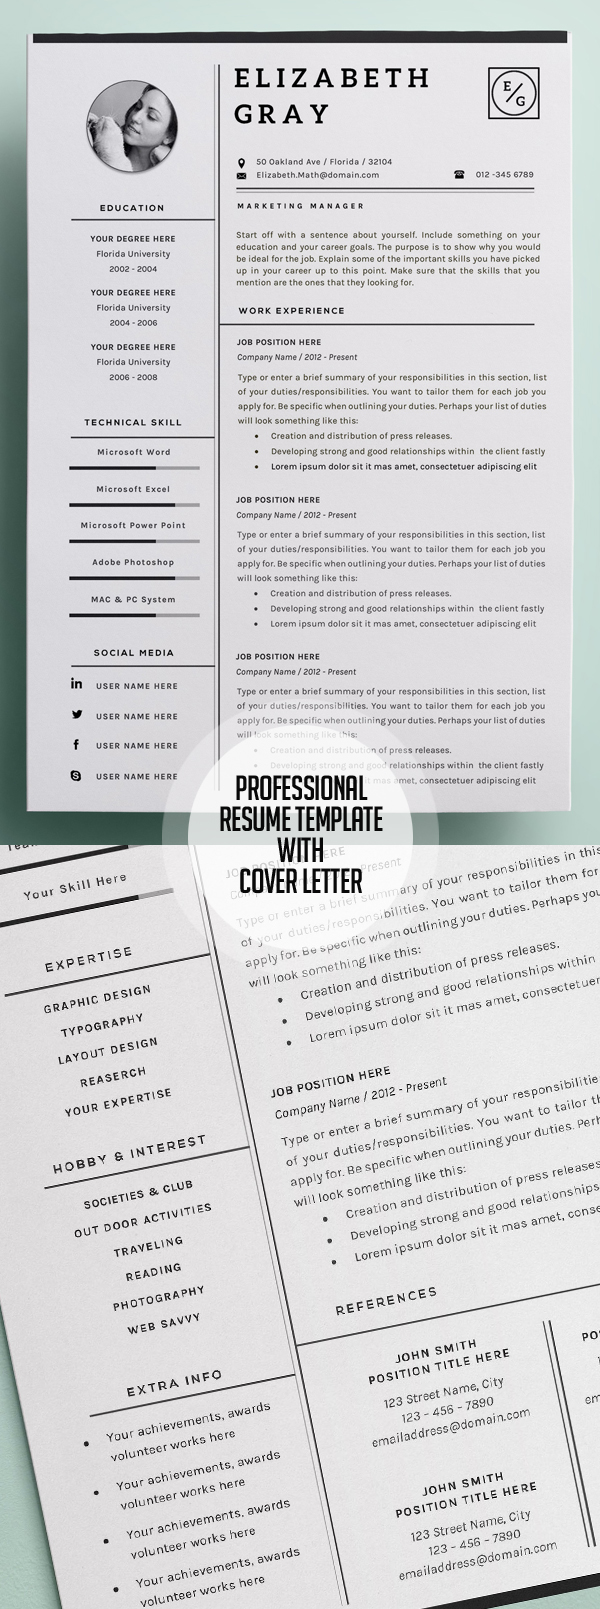 50 Best Resume Templates For 2018 - 30